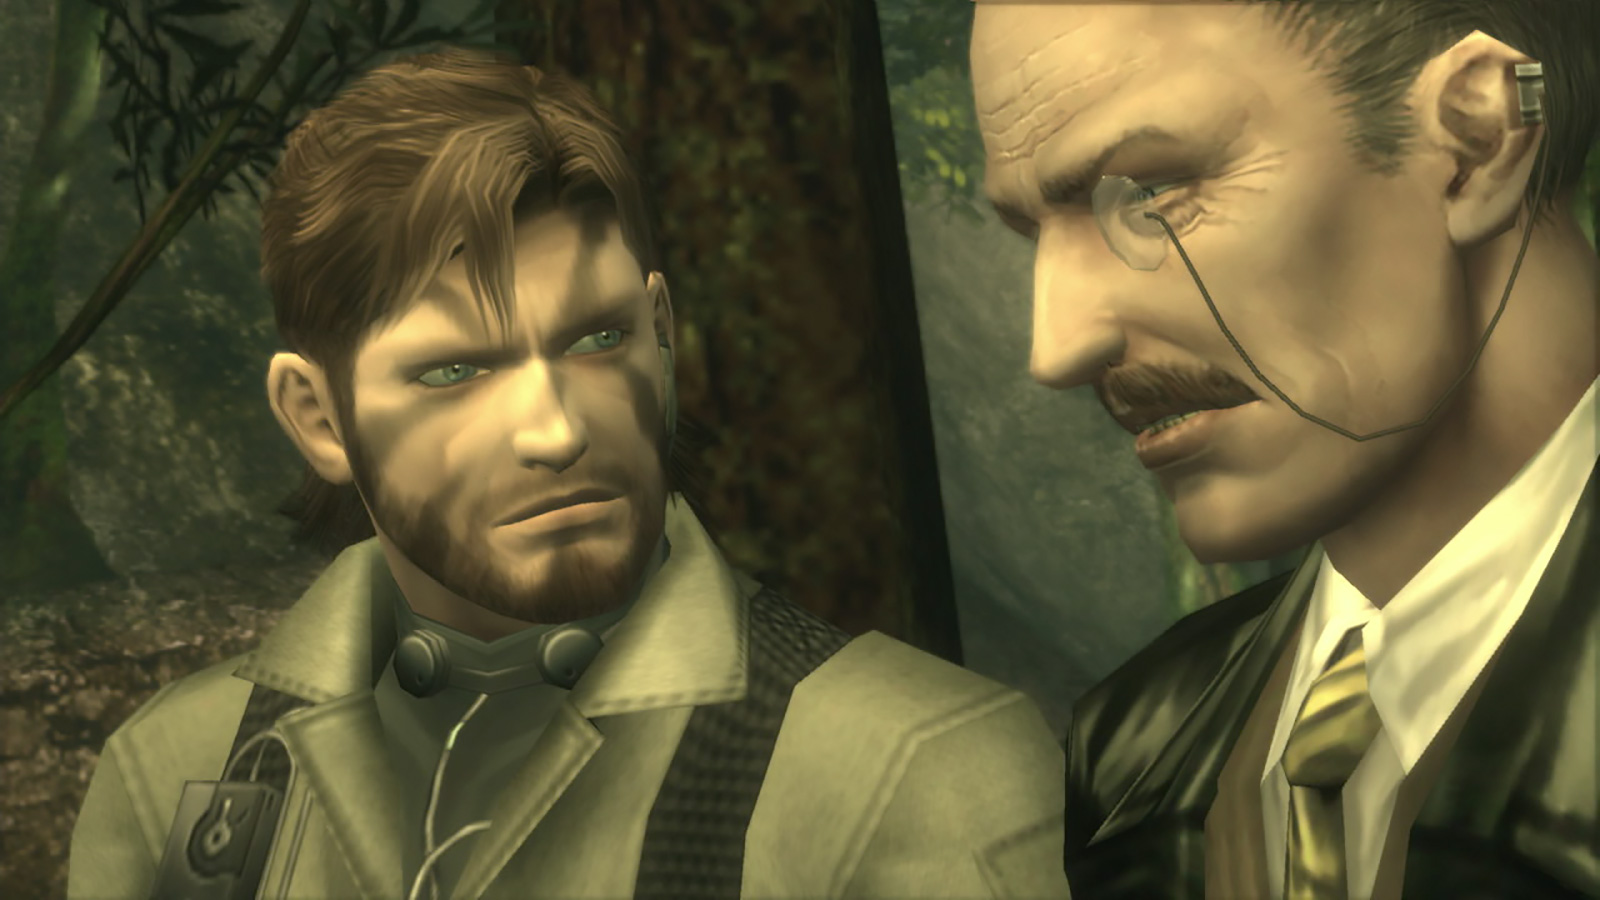 Metal Gear Solid 3 Snake Eater Hd Now Available For Nvidia Shield